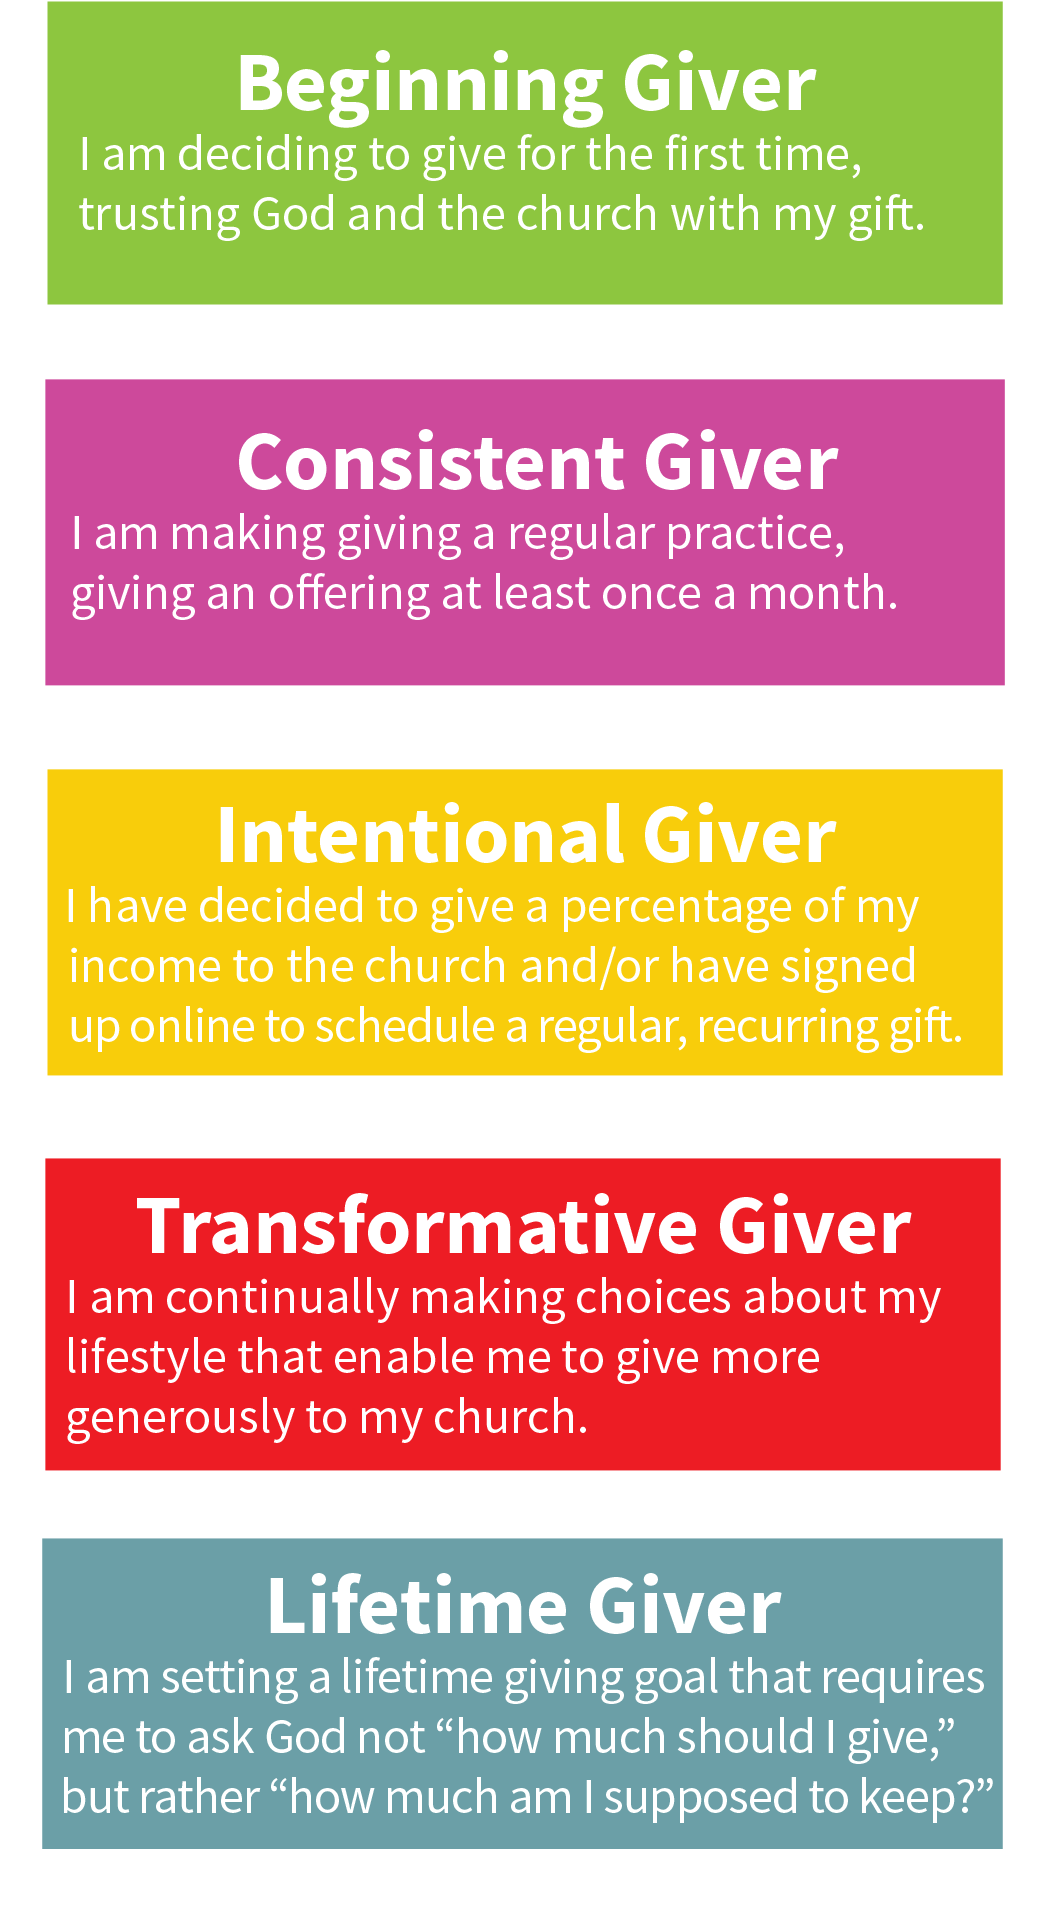 Giving - Each year, we are asked to pray about how God would be generous through us. Where are you in your generosity of giving?